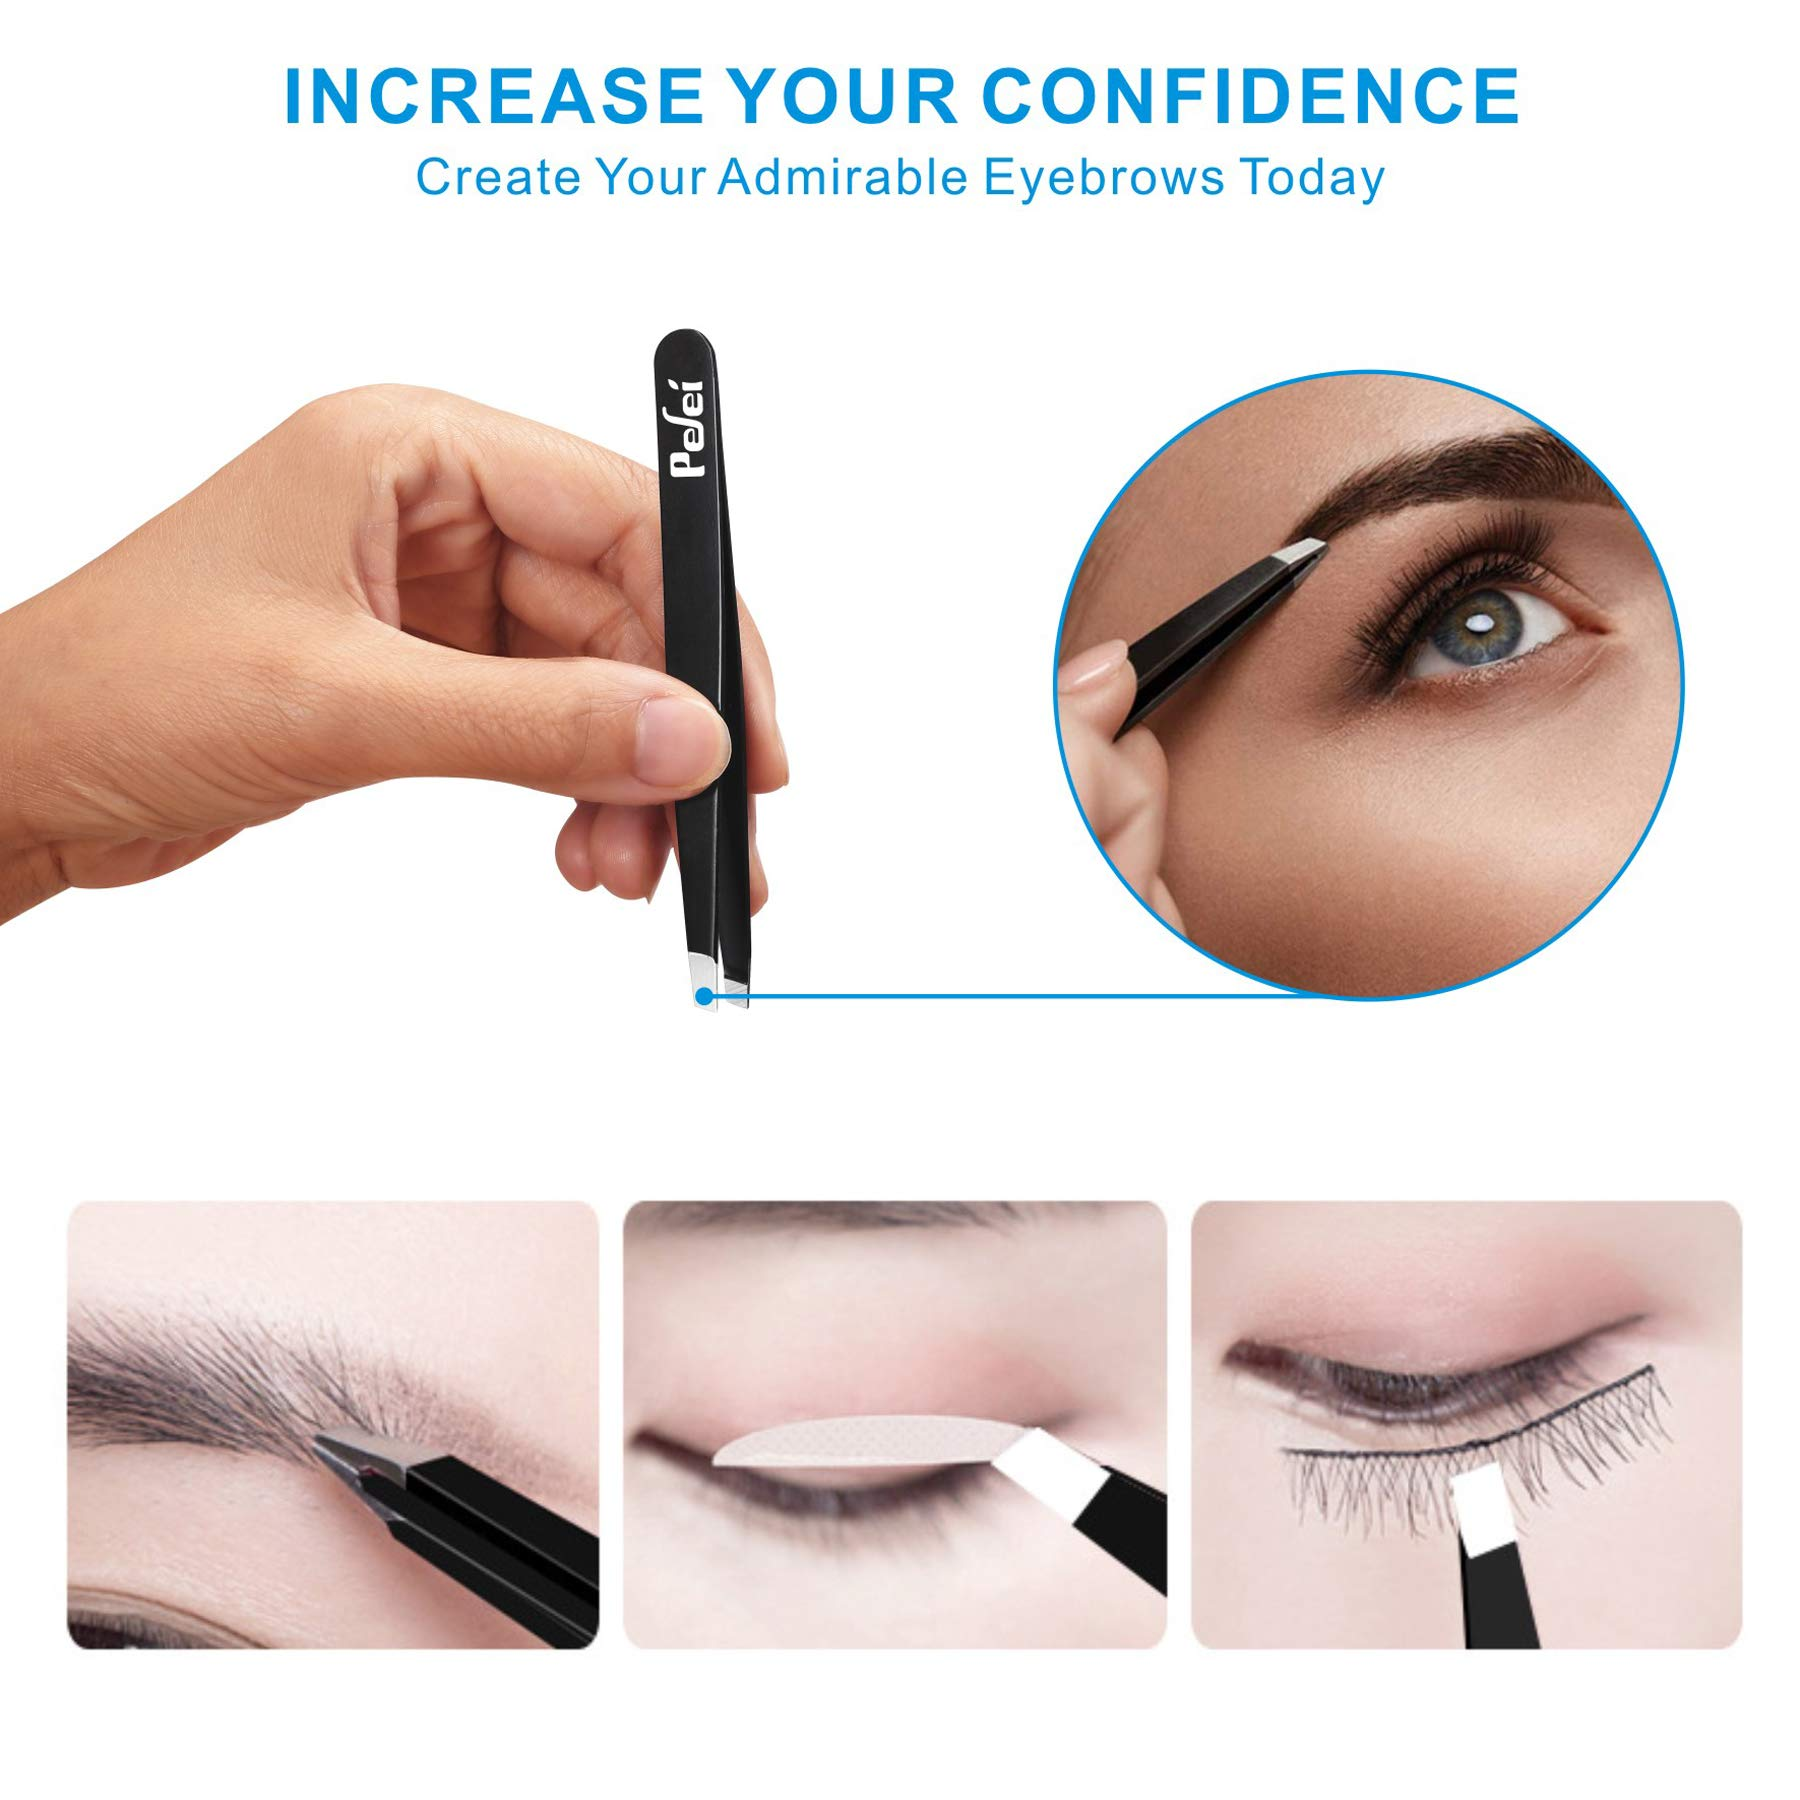 Tweezers Set - Professional Tweezers for Eyebrows